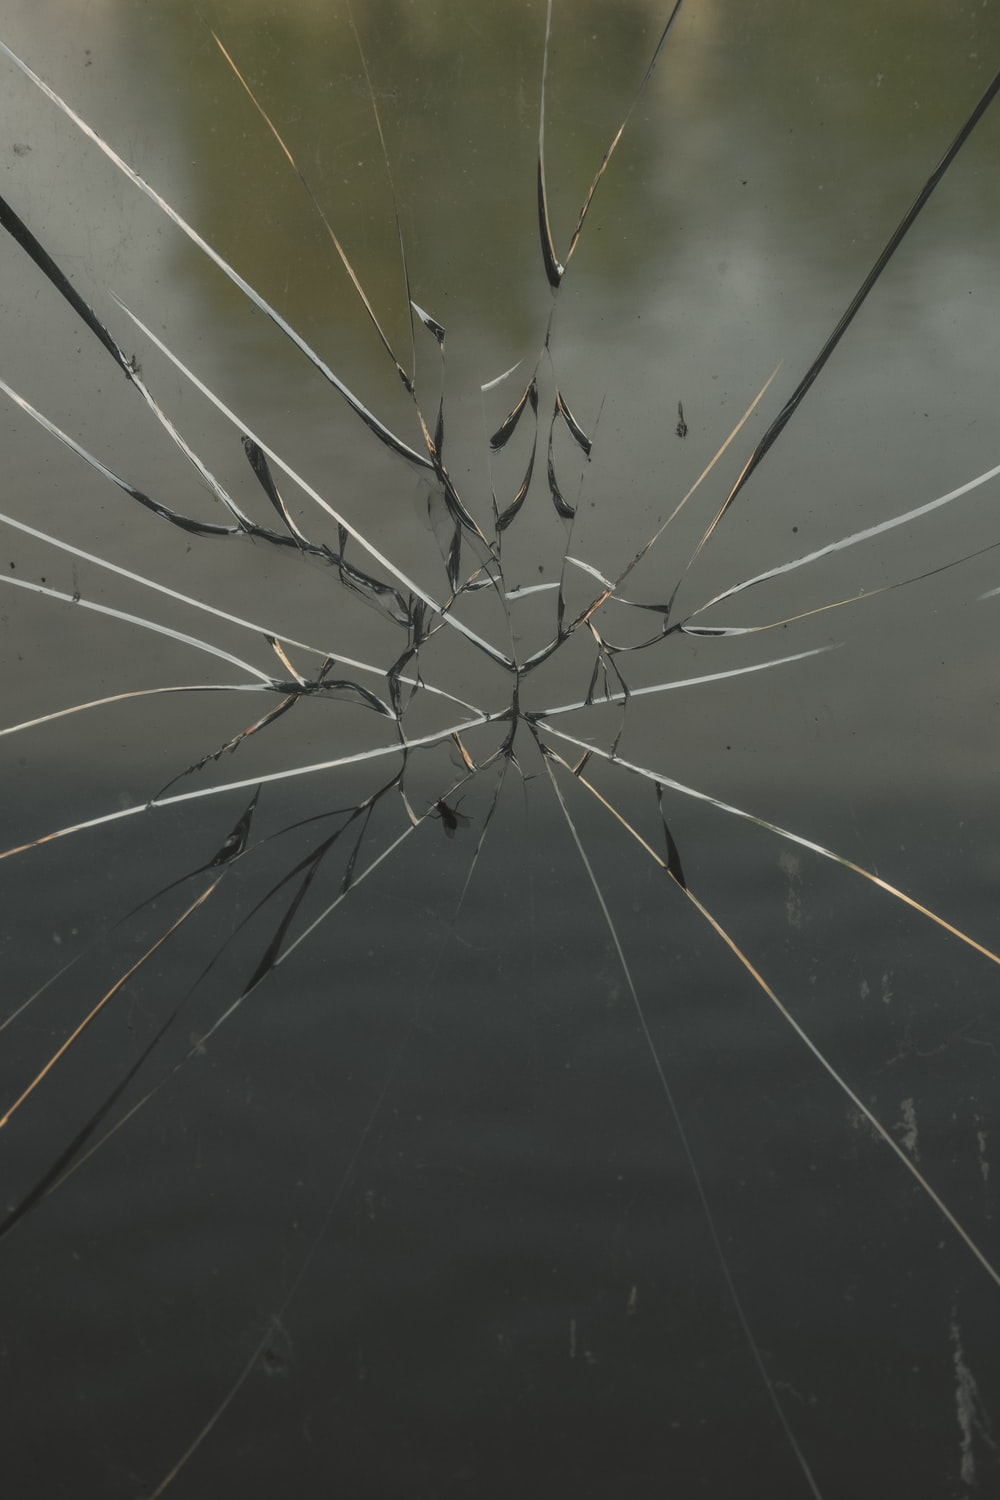 view of cracked glass